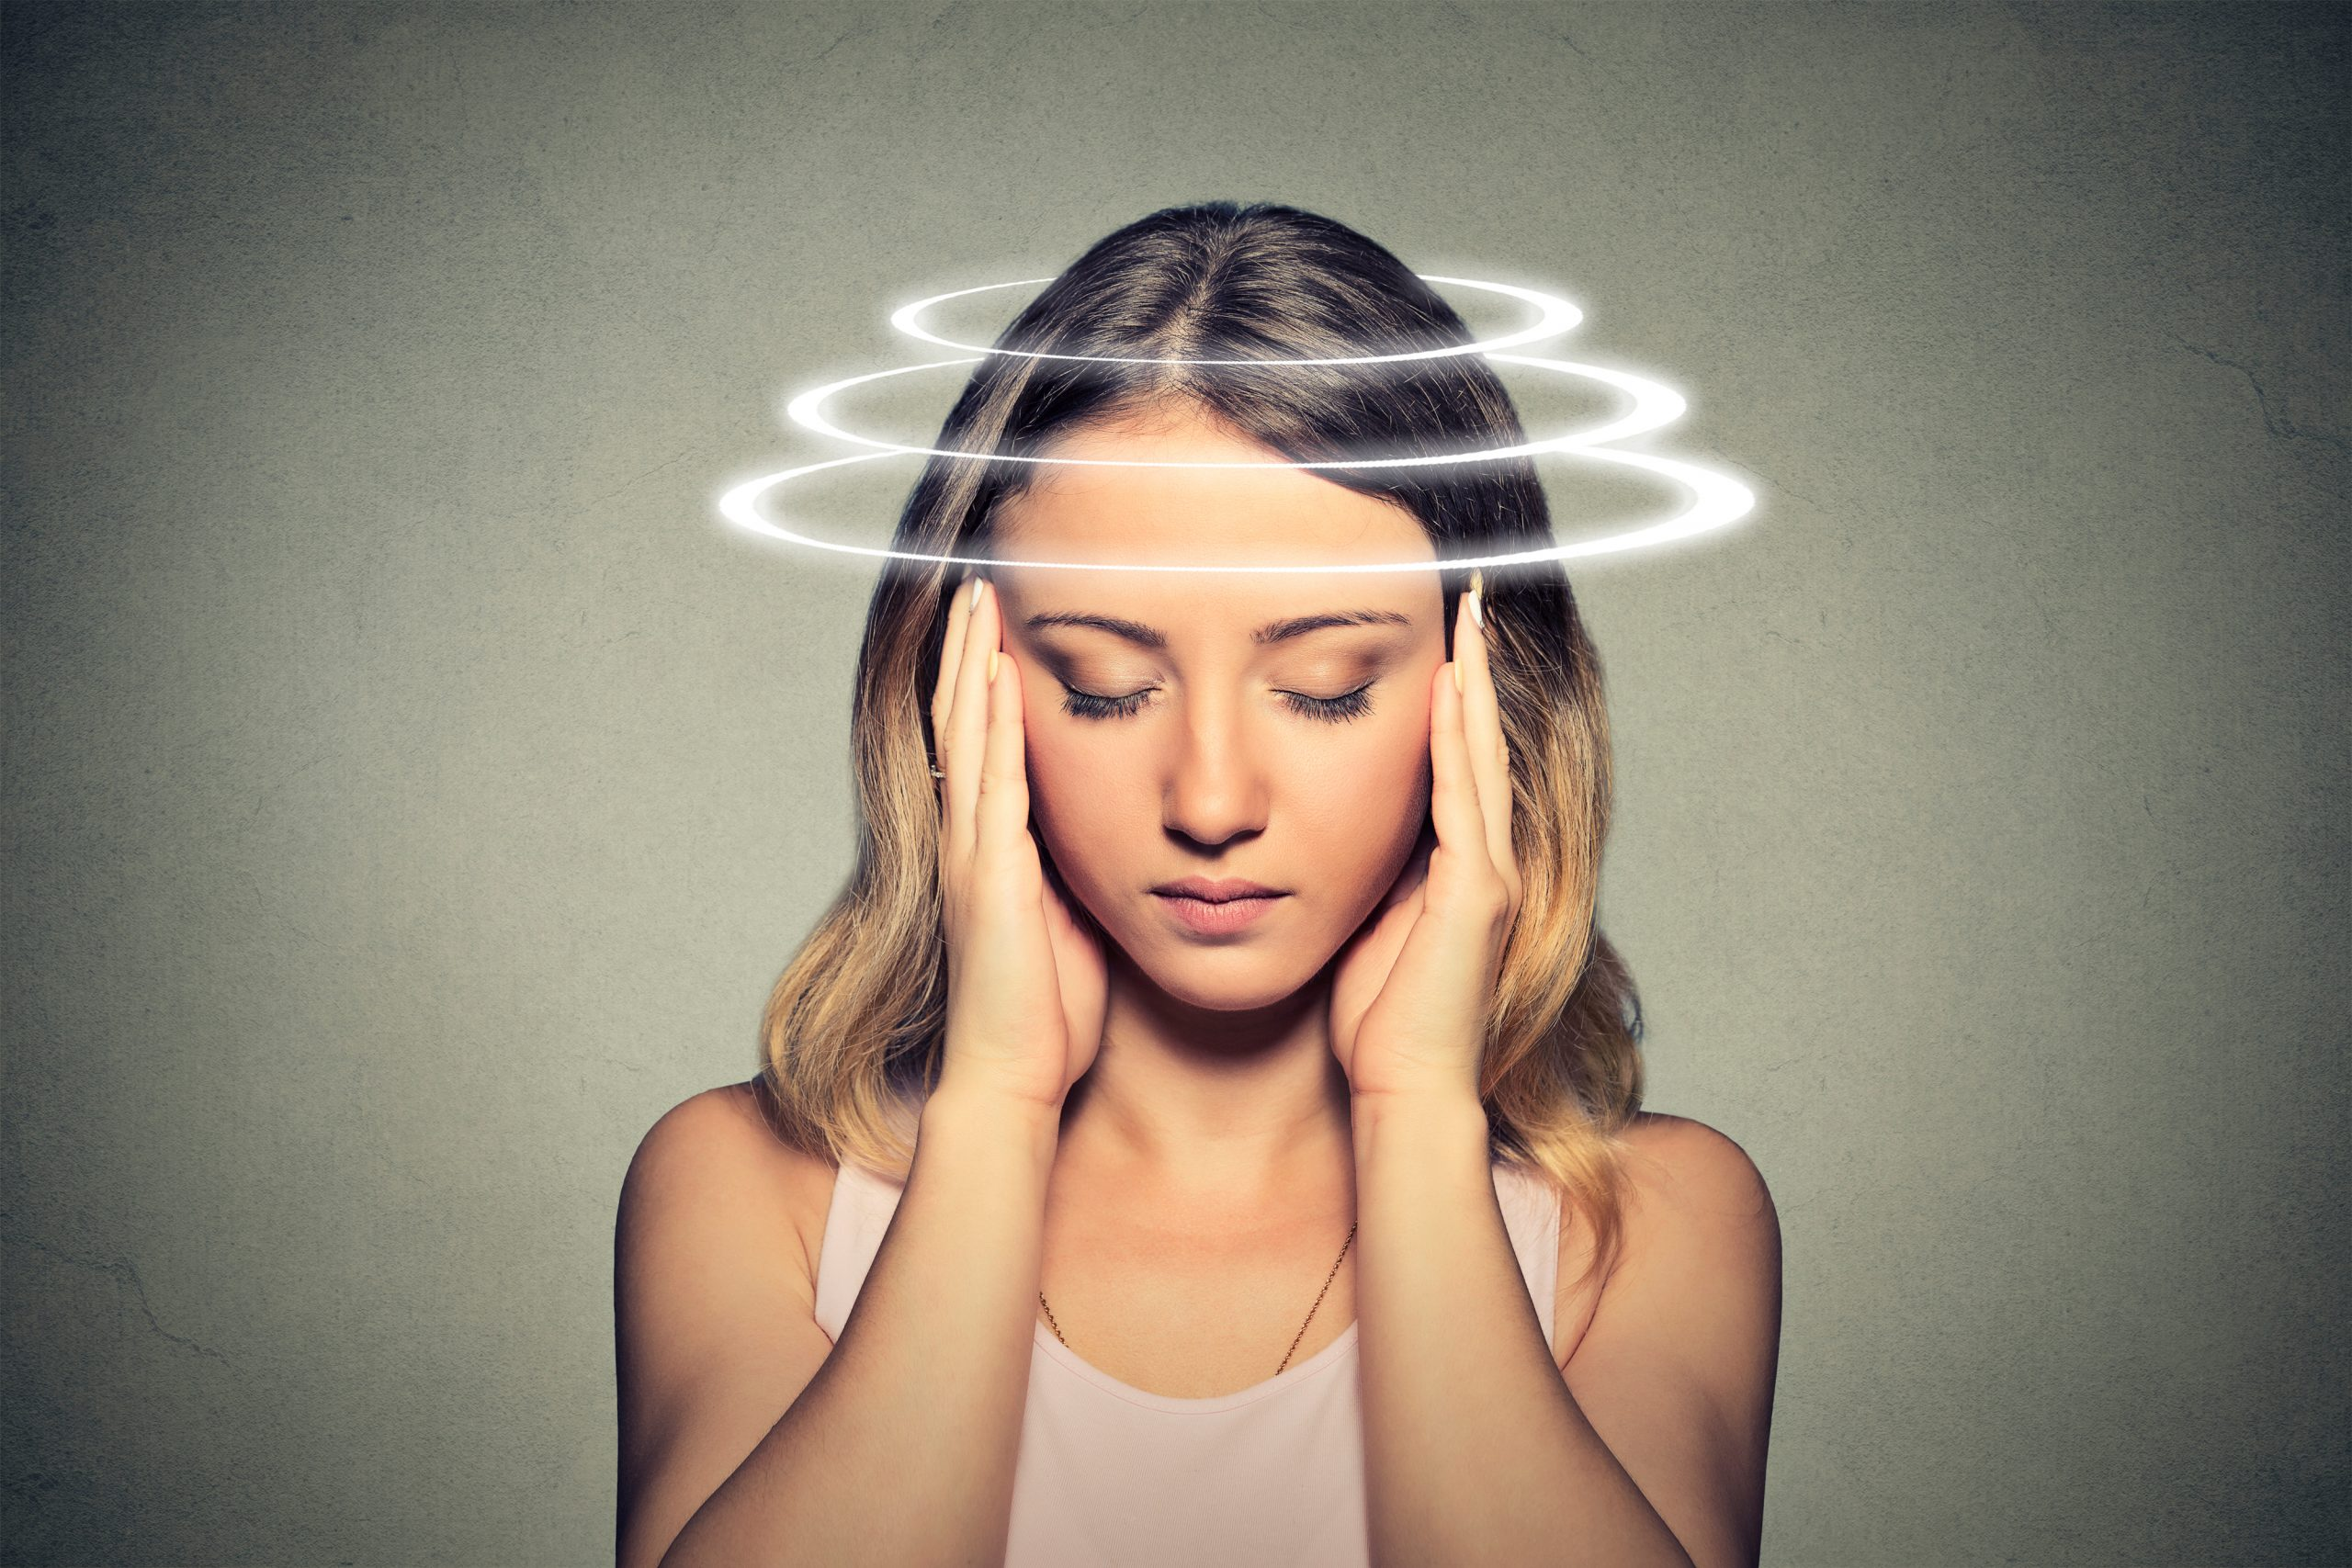 dizziness, Escondido chiropractic therapy